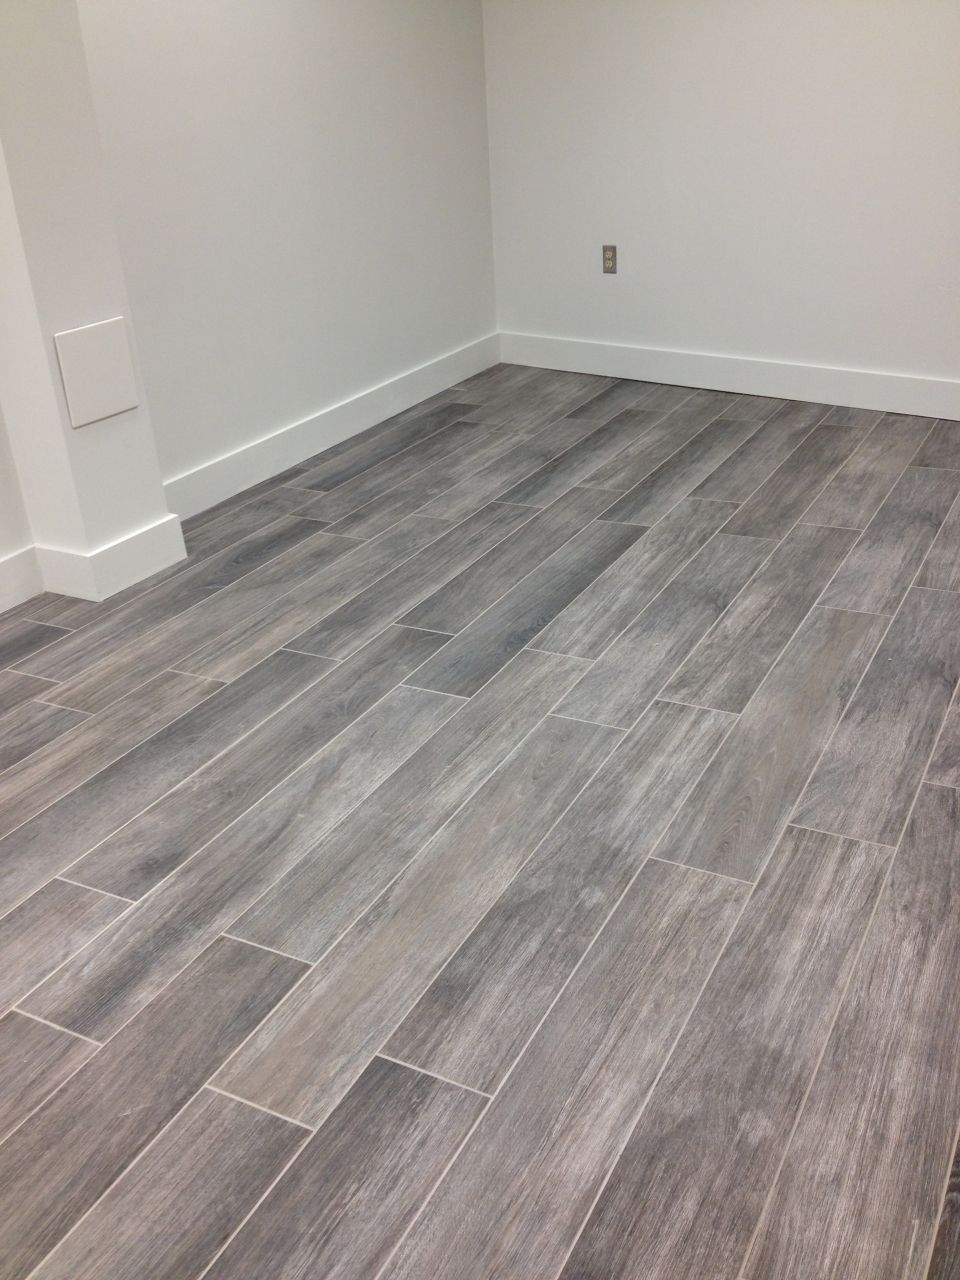 Reasons That Make Tile Hardwood Floor A